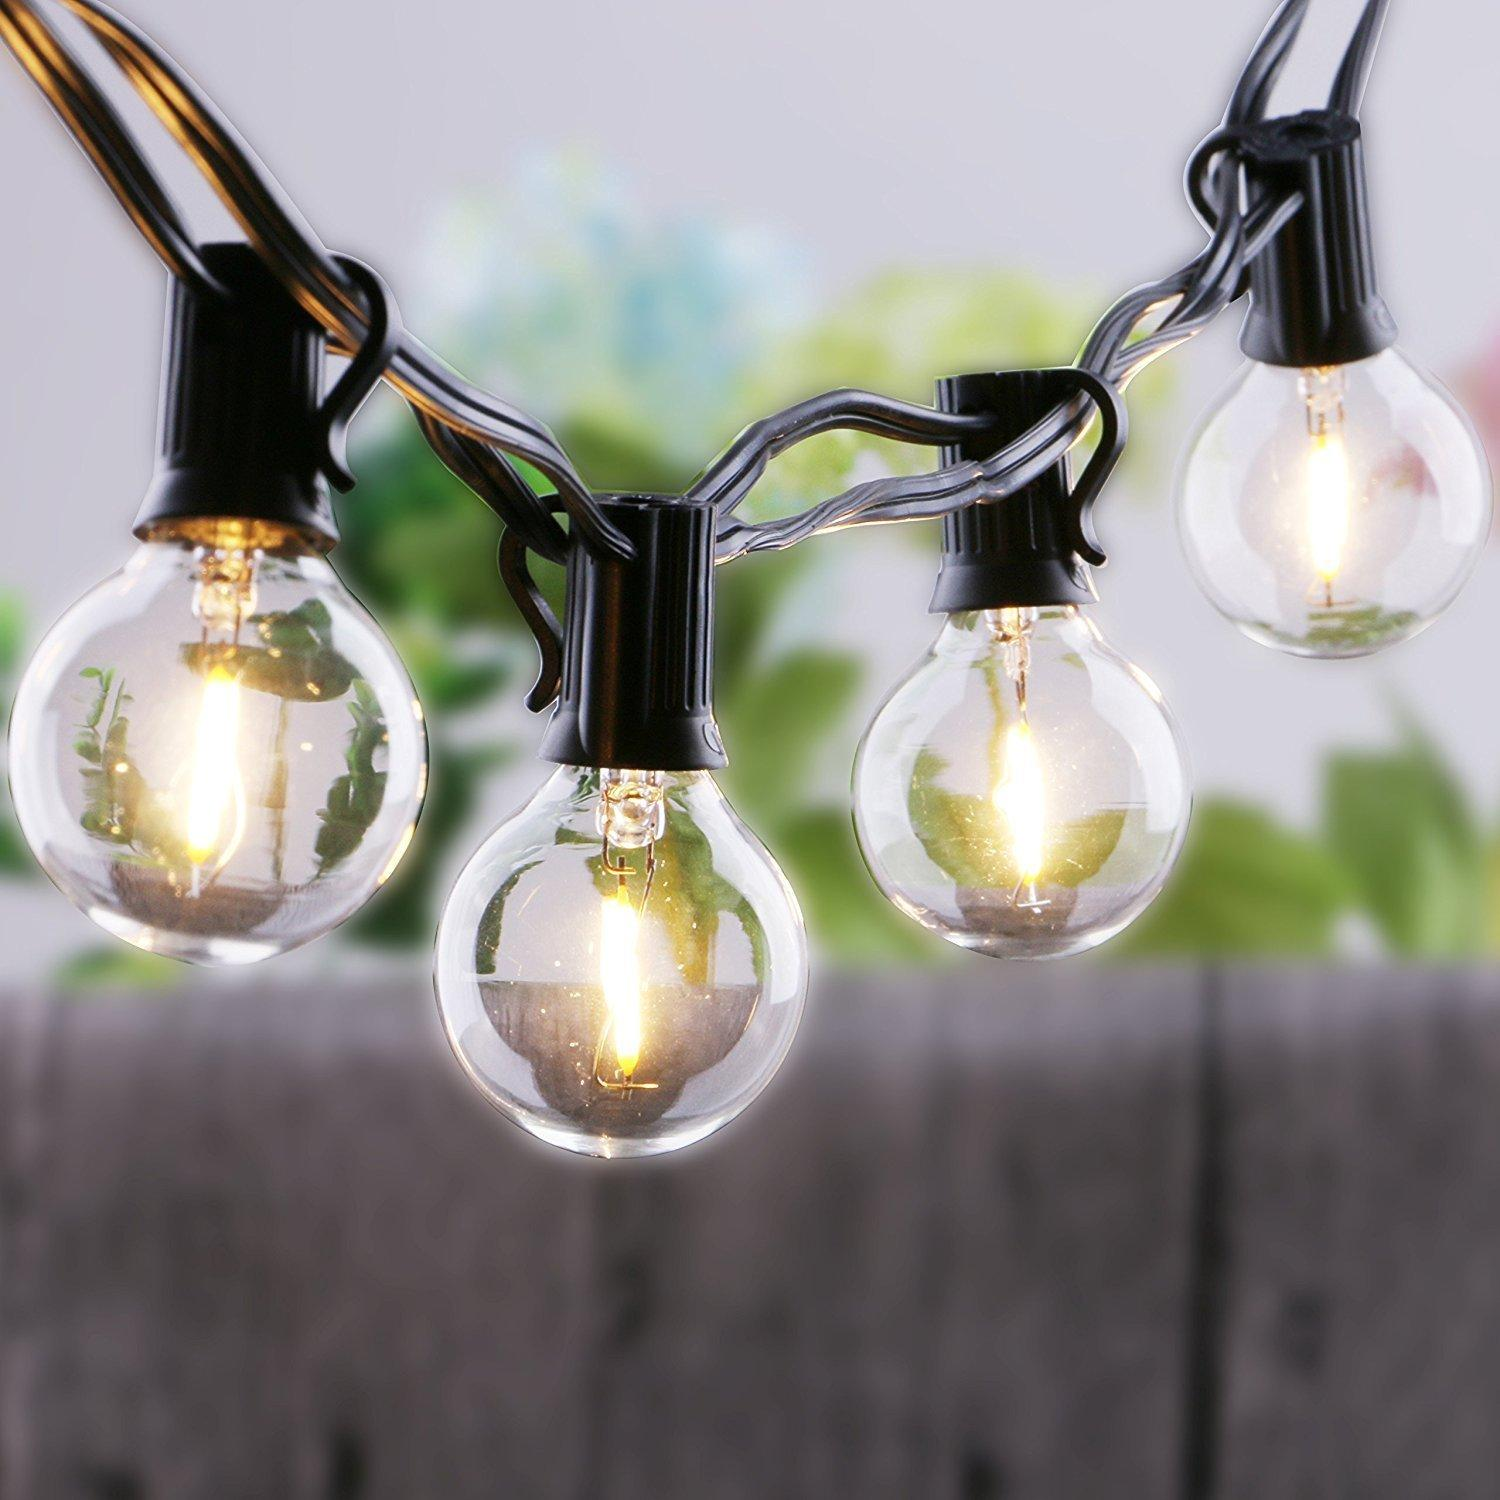 String light company incandescent light bulb pack of 25 - 25ft Clear Globe Bulb G40 String Light Set With 25 G40 Bulbs Included Patio Lights Patio Lights G40 Bulb String Lamp G40 String Lights G40 Bulbs Light